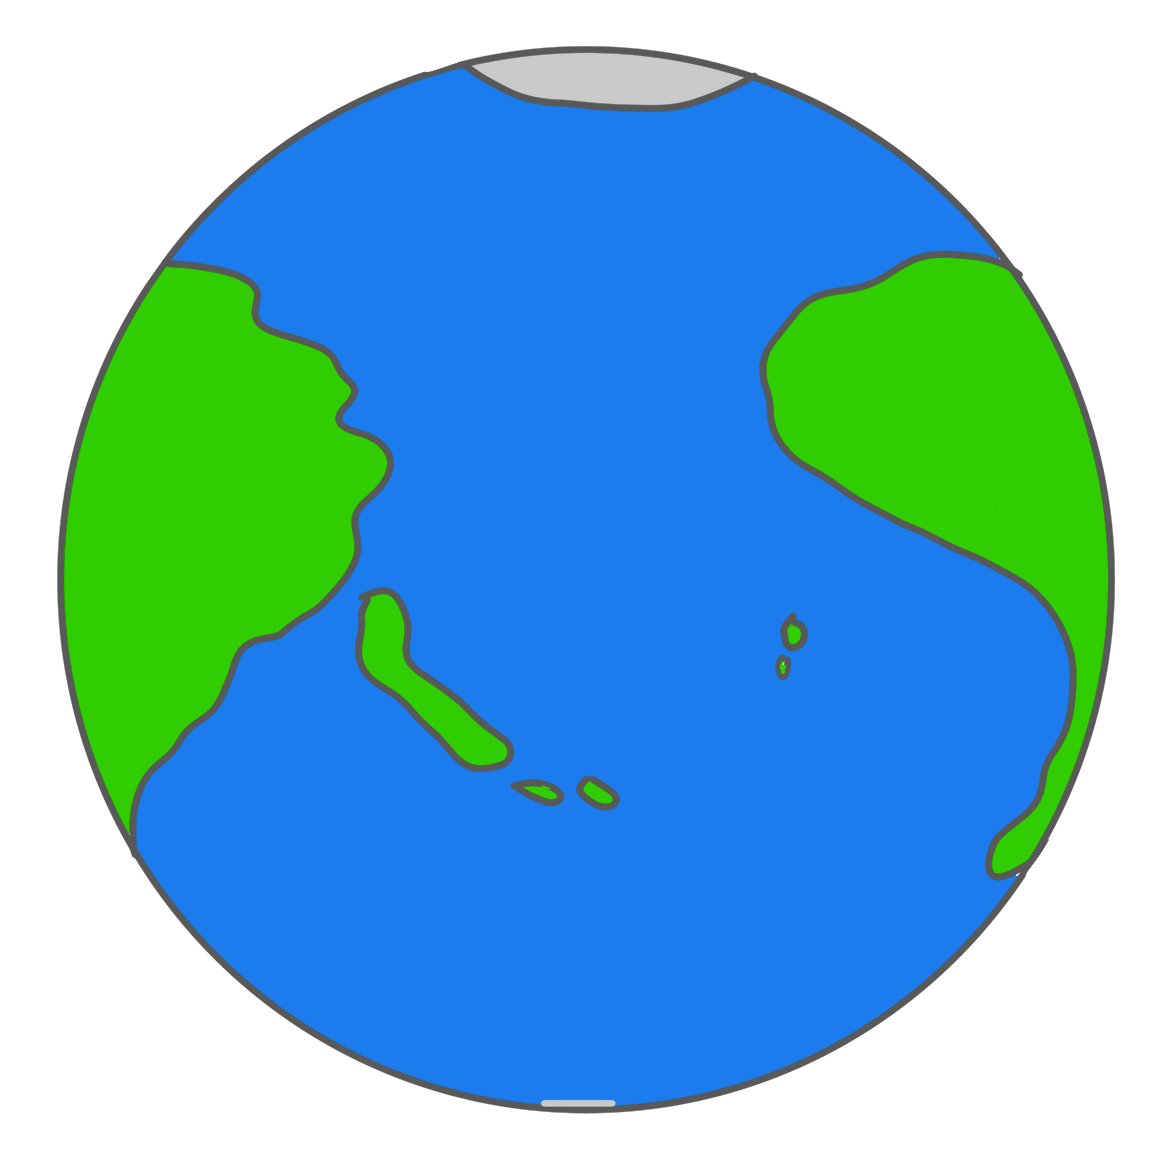 Free Earth Cliparts, Download Free Clip Art, Free Clip Art on.